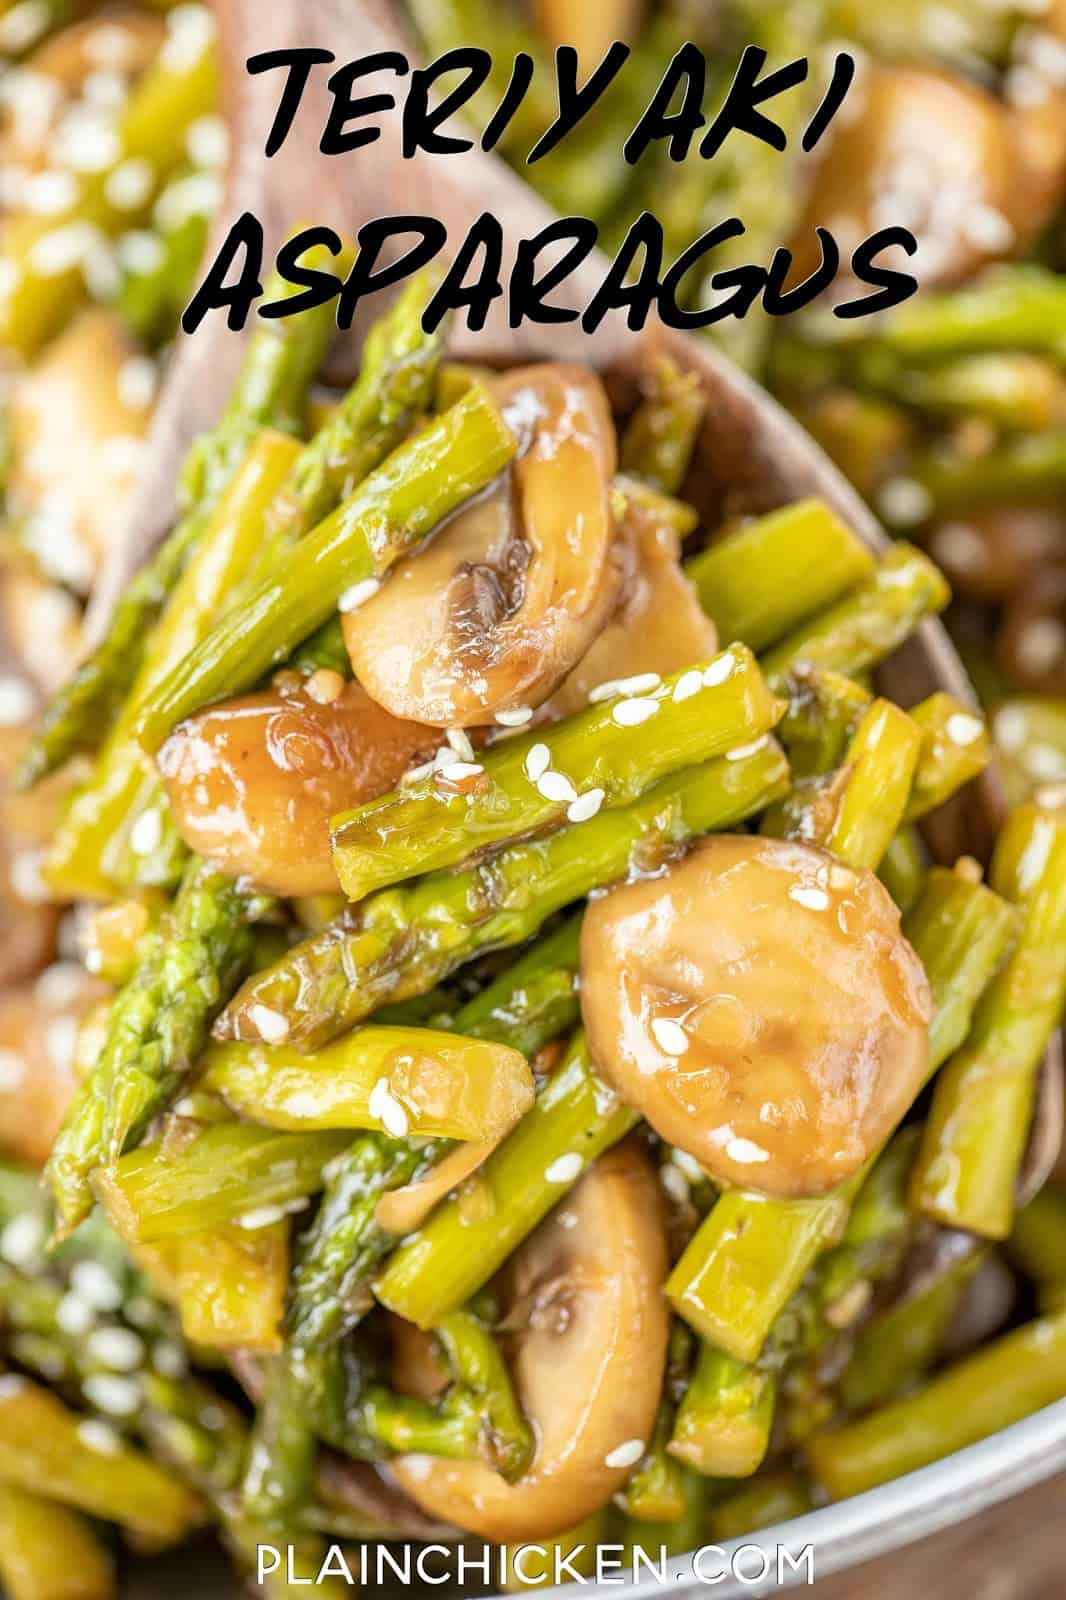 scooping asparagus and mushrooms out of a skillet